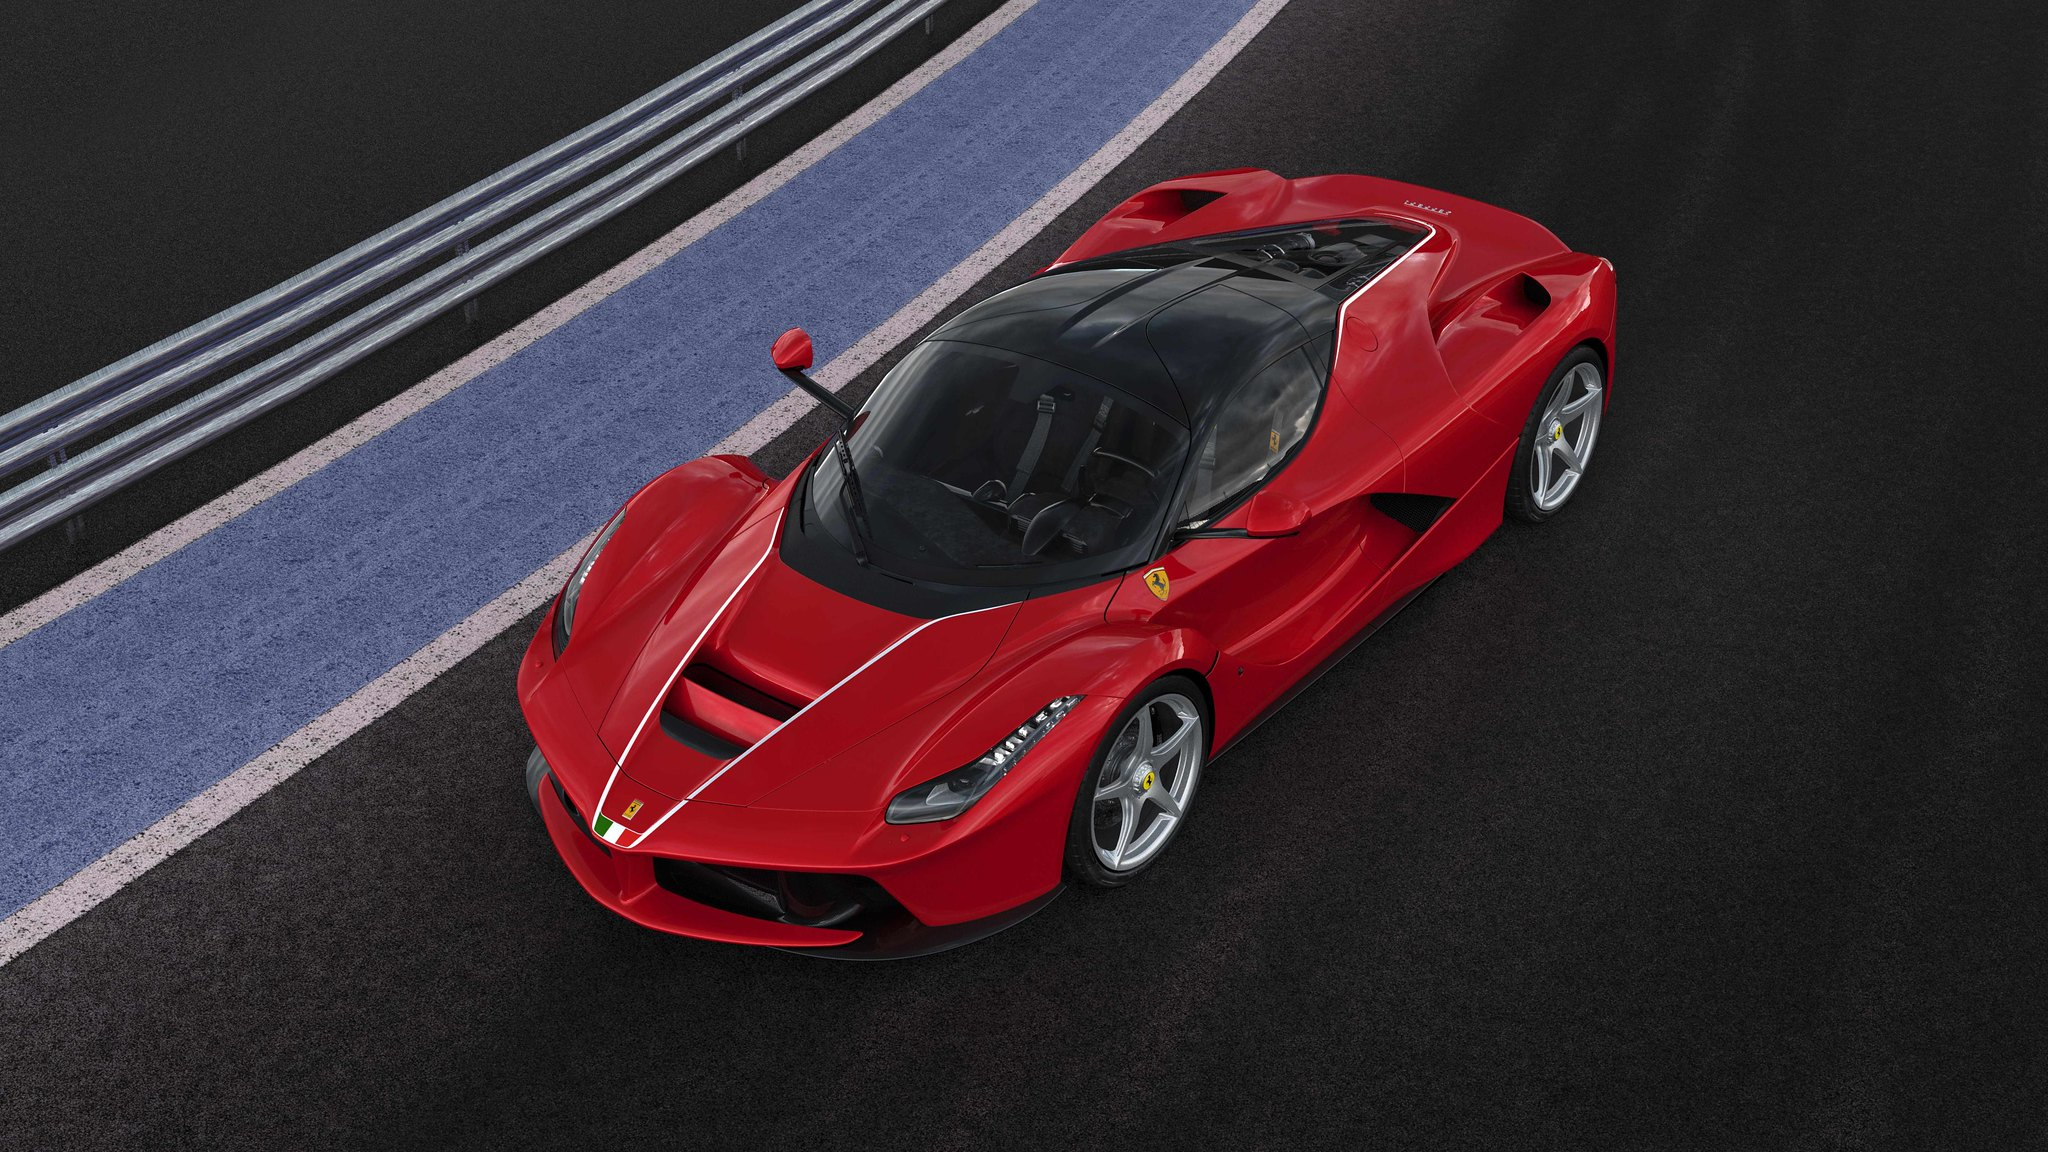 One-of-a-kind LaFerrari raises $7 million to benefit Central Italy